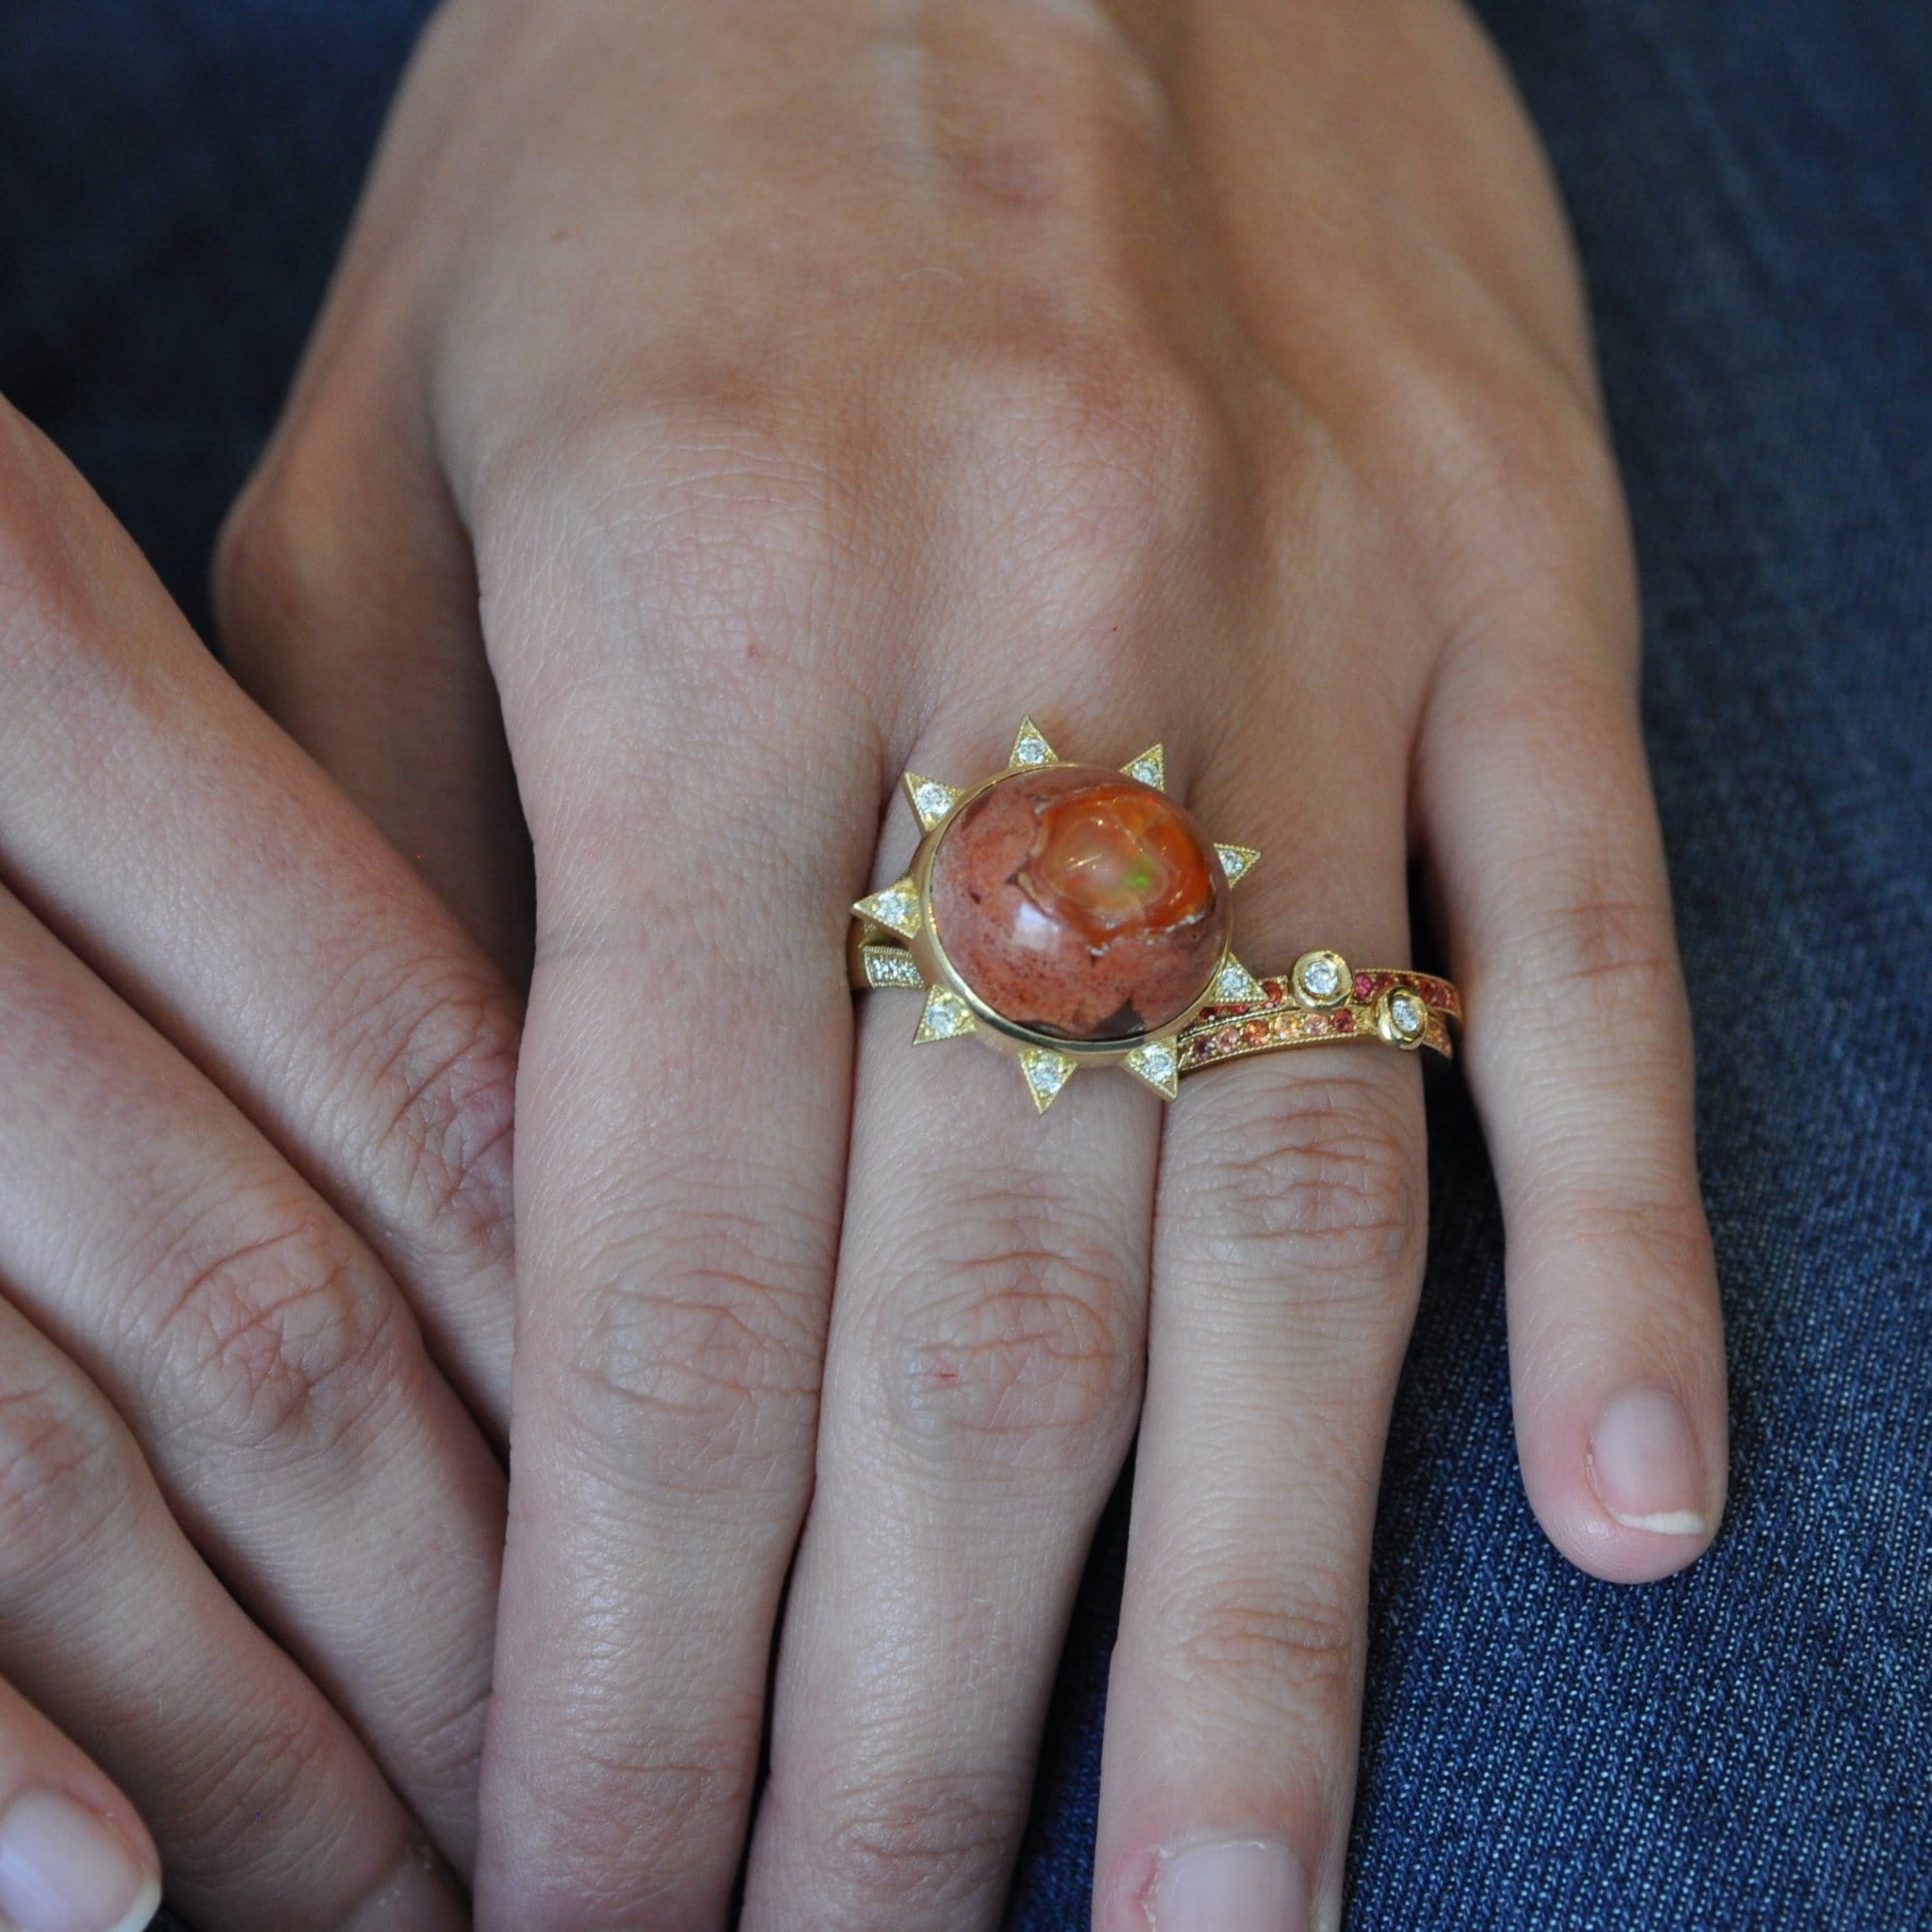 Fire Opal Diamond Starburst Cocktail Ring - Curated Los Angeles